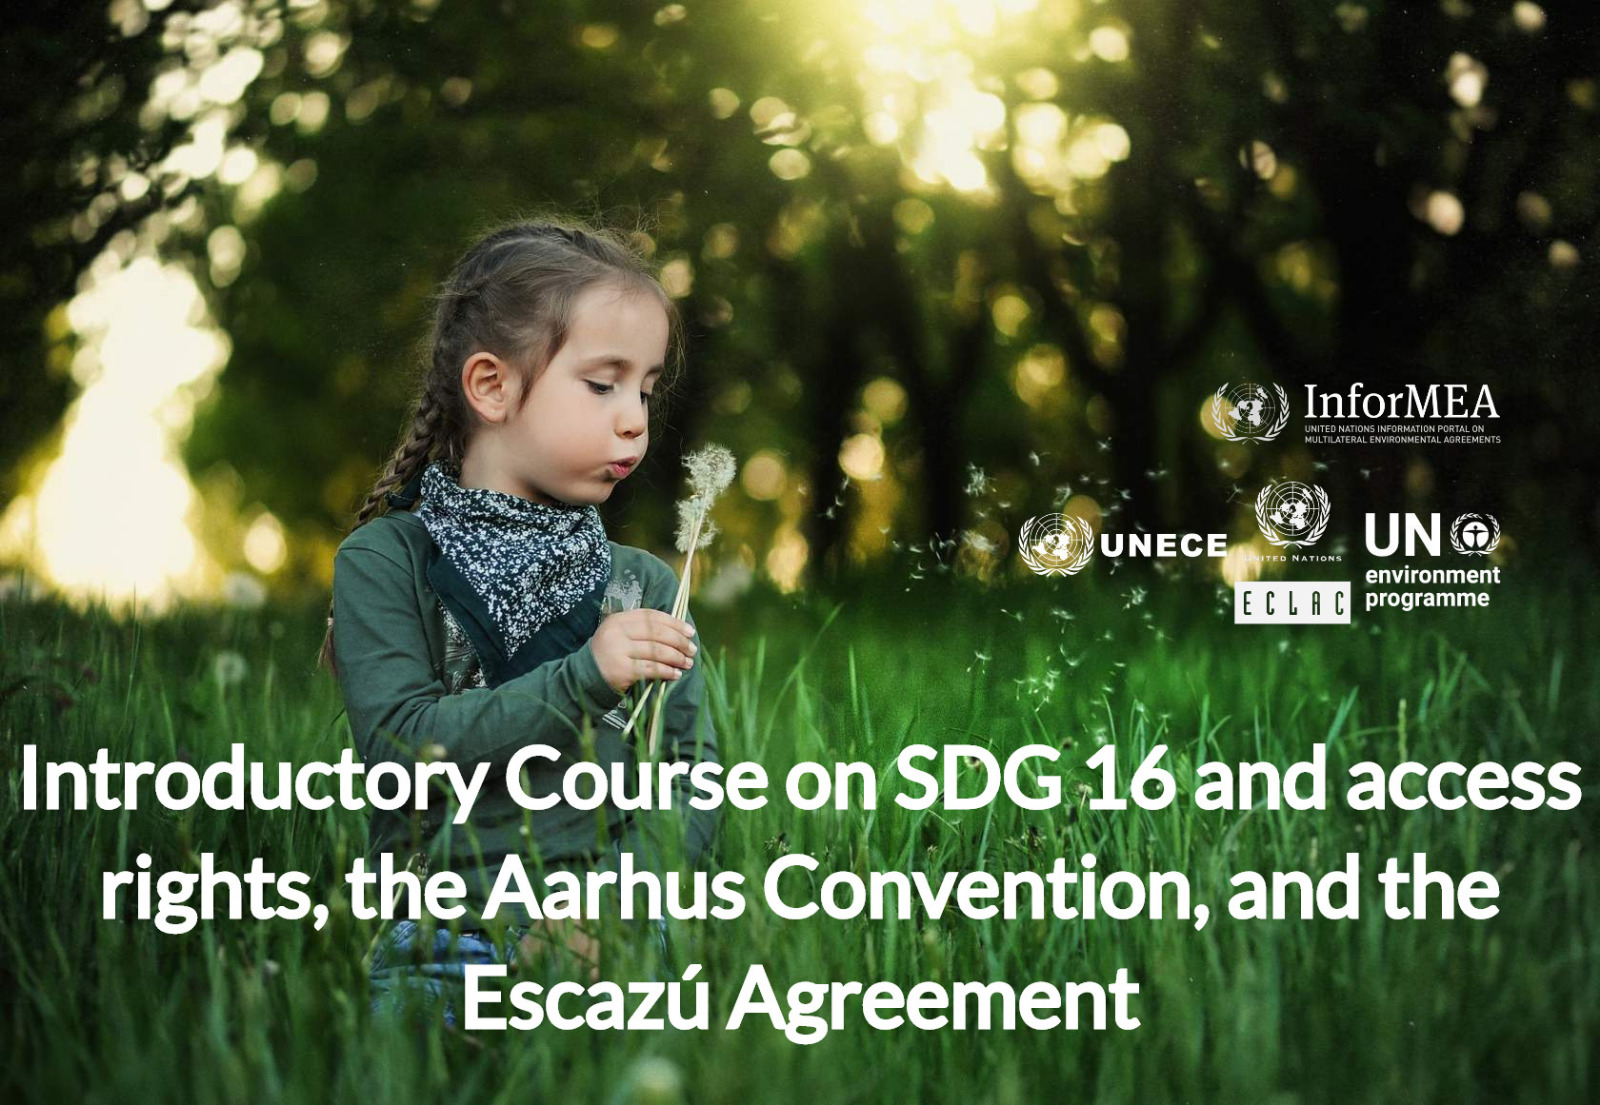 SDG 16 (Access Rights), the Aarhus Convention, and the Escazu Agreement